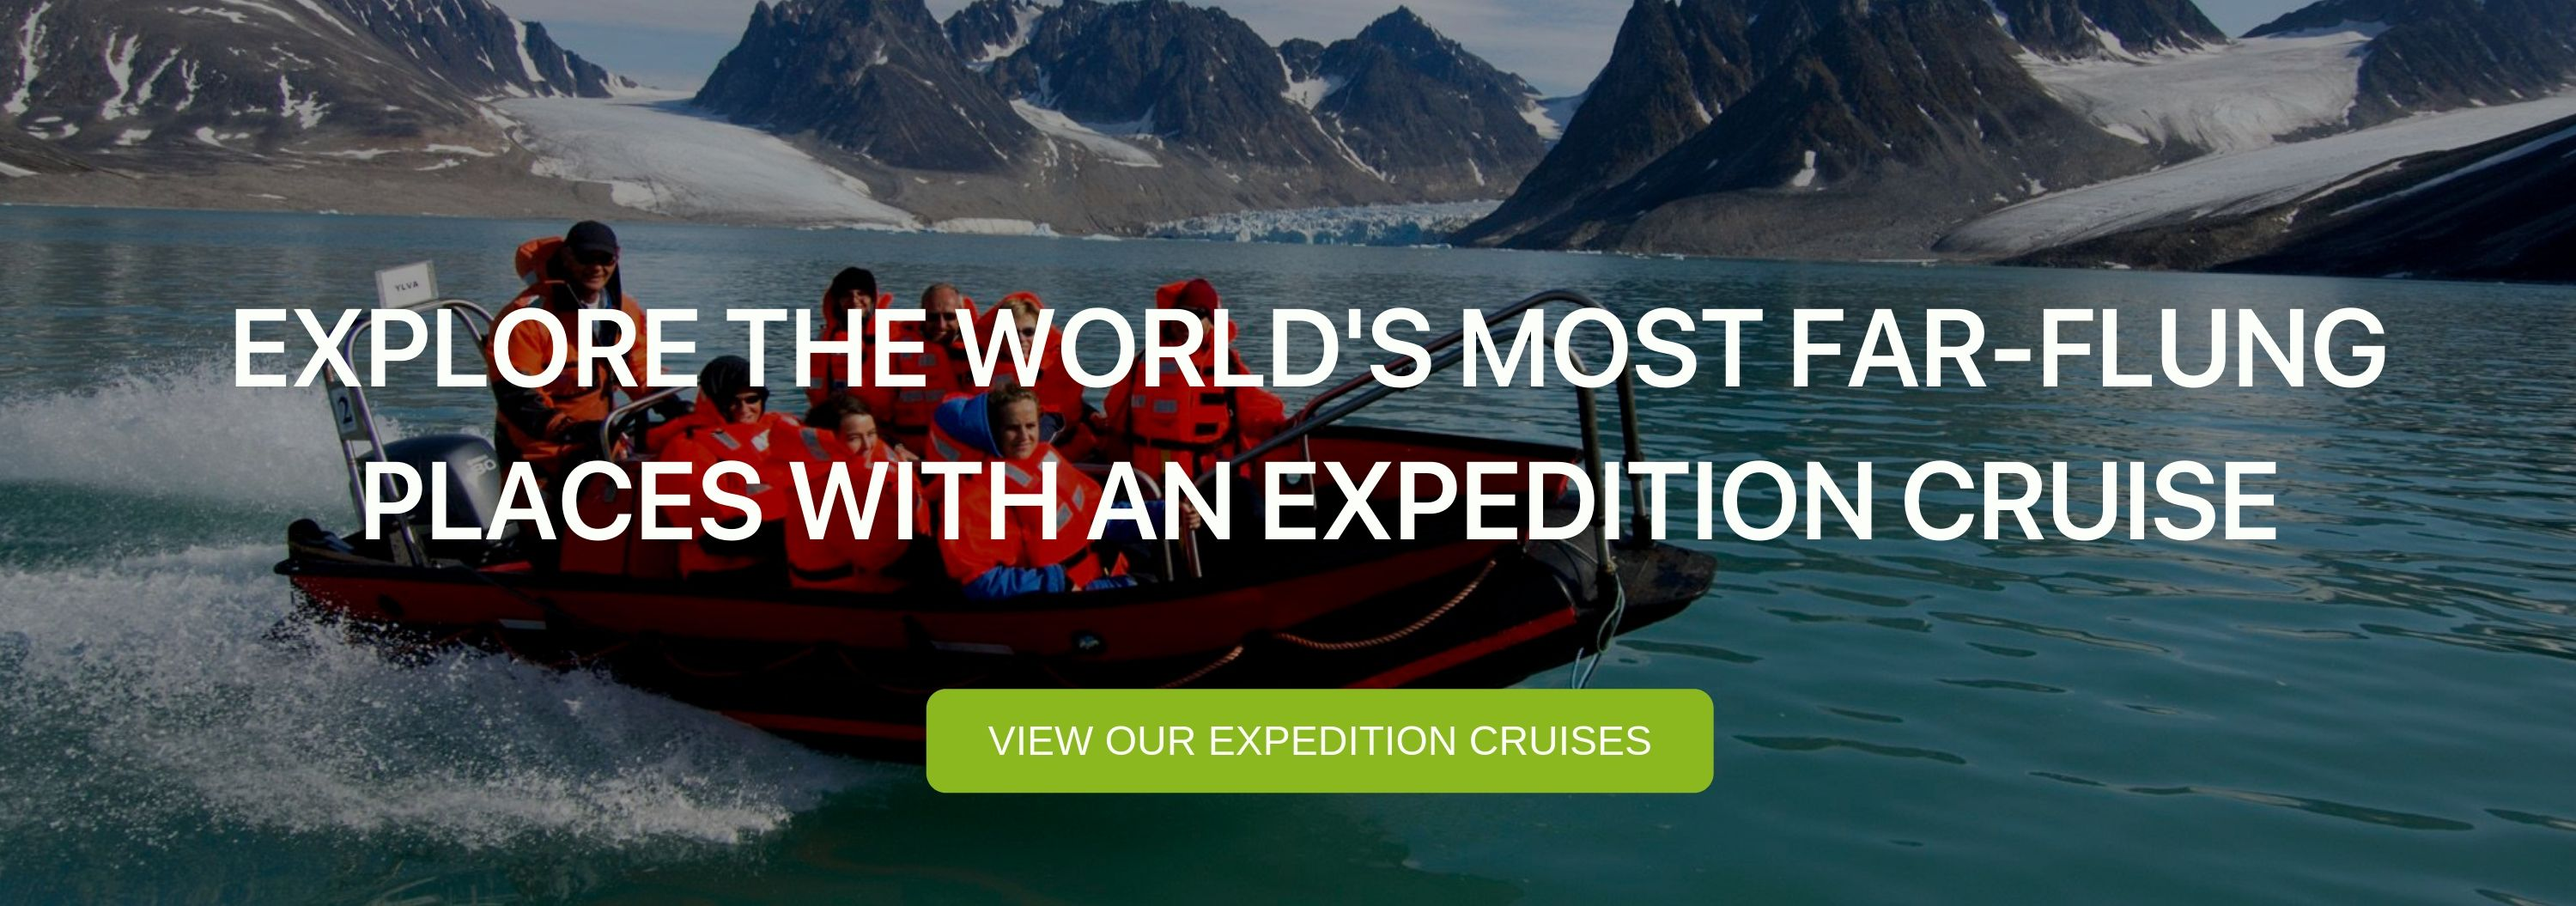 """A banner that reads """"Explore the world's most far-flung places with expedition cruise"""""""